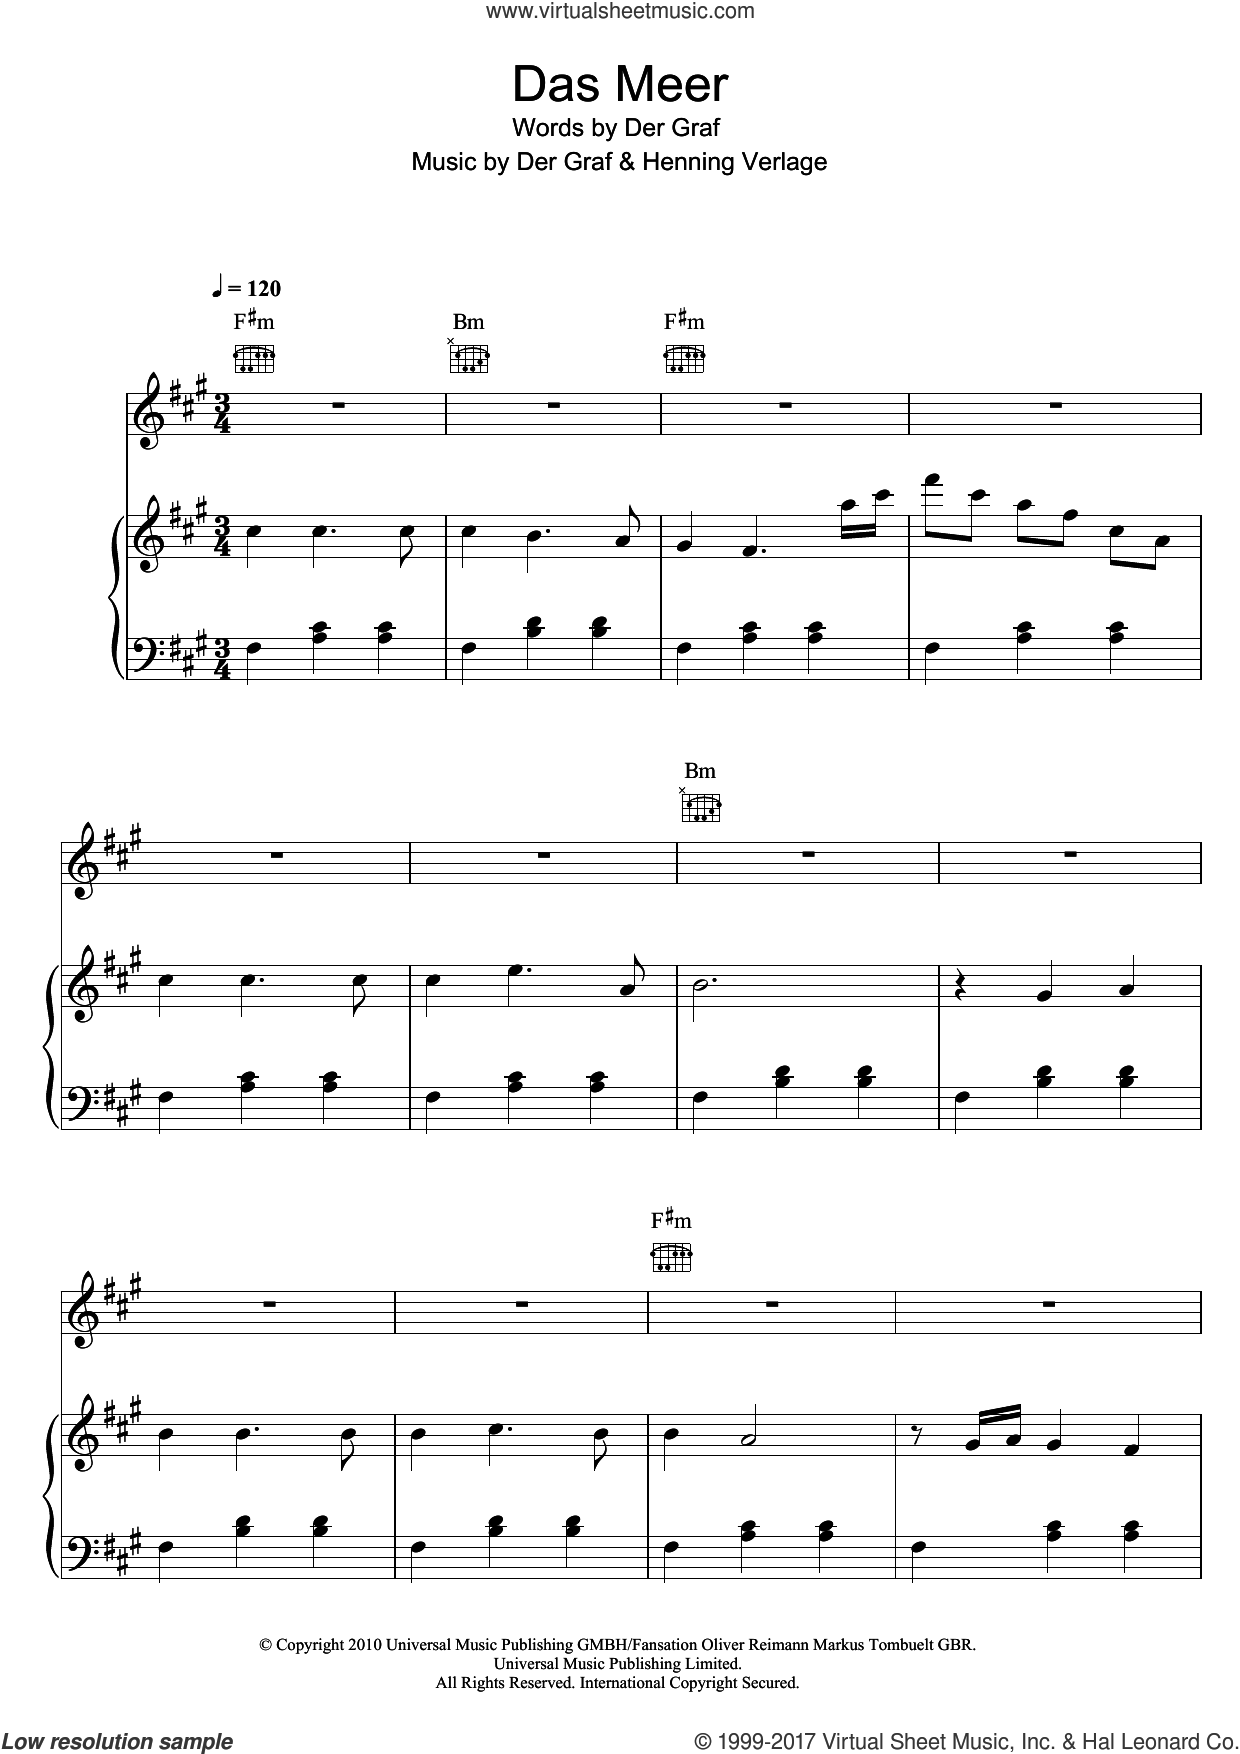 Das Meer sheet music for voice, piano or guitar by Henning Verlage and Der Graf. Score Image Preview.